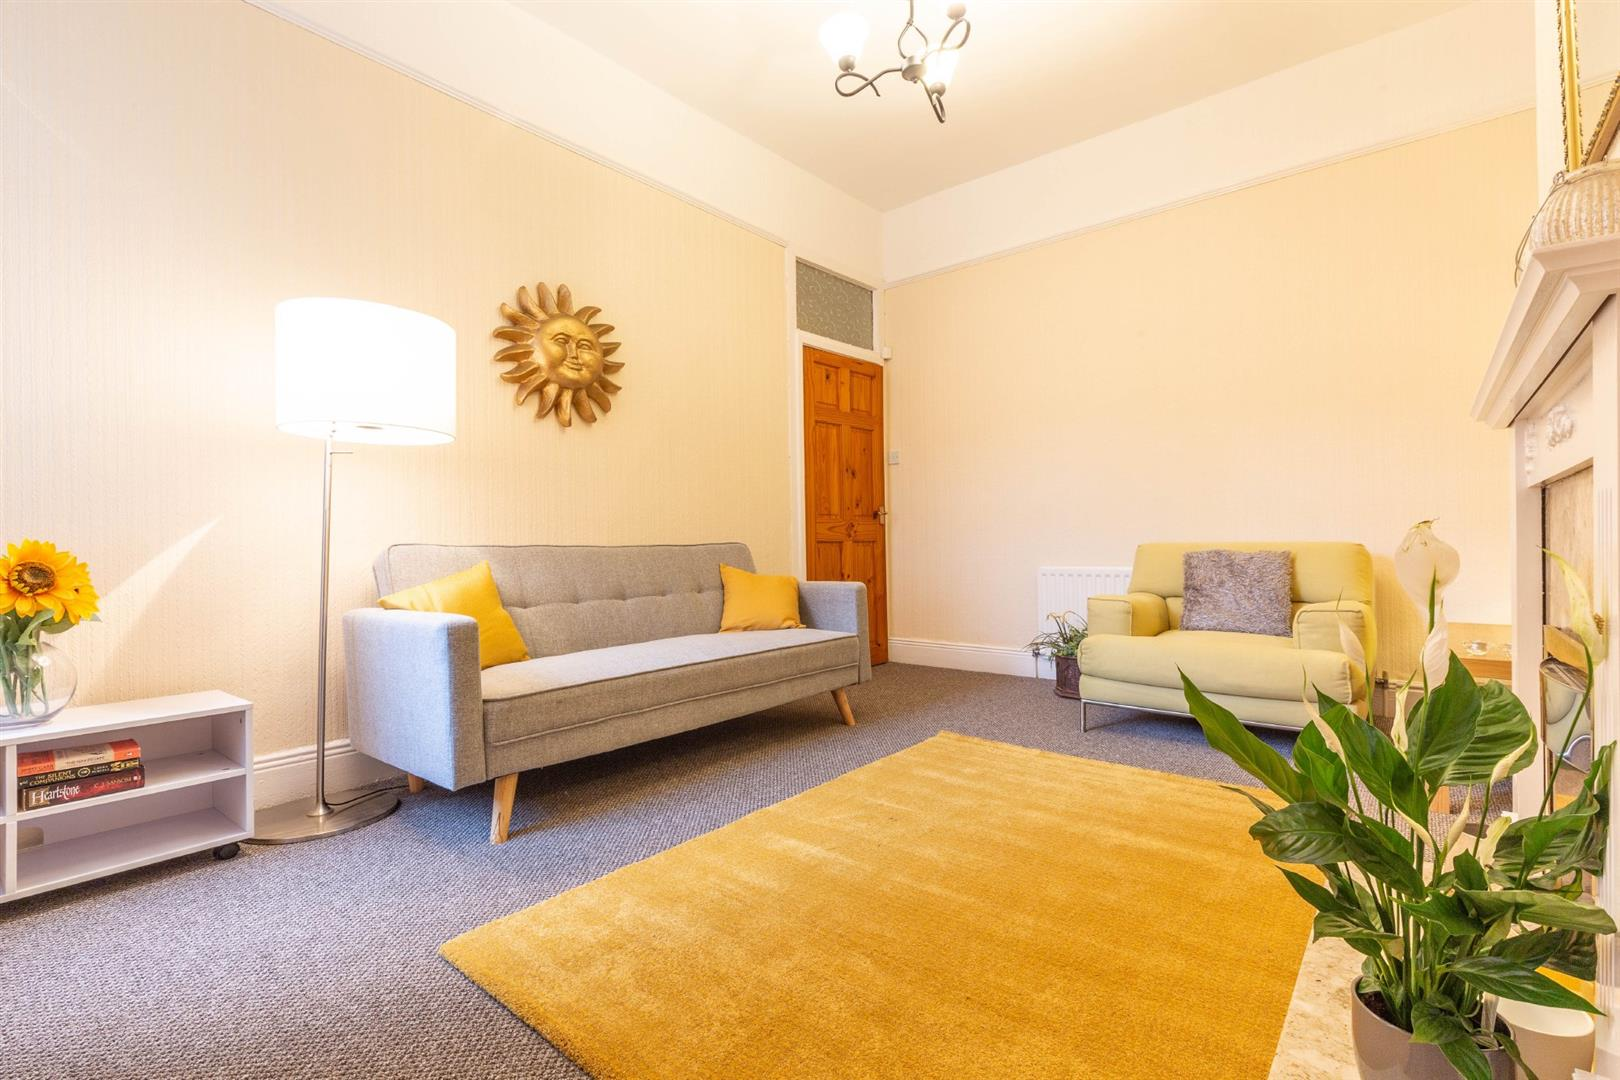 2 bed flat to rent in Newcastle Upon Tyne, NE6 5SN  - Property Image 1